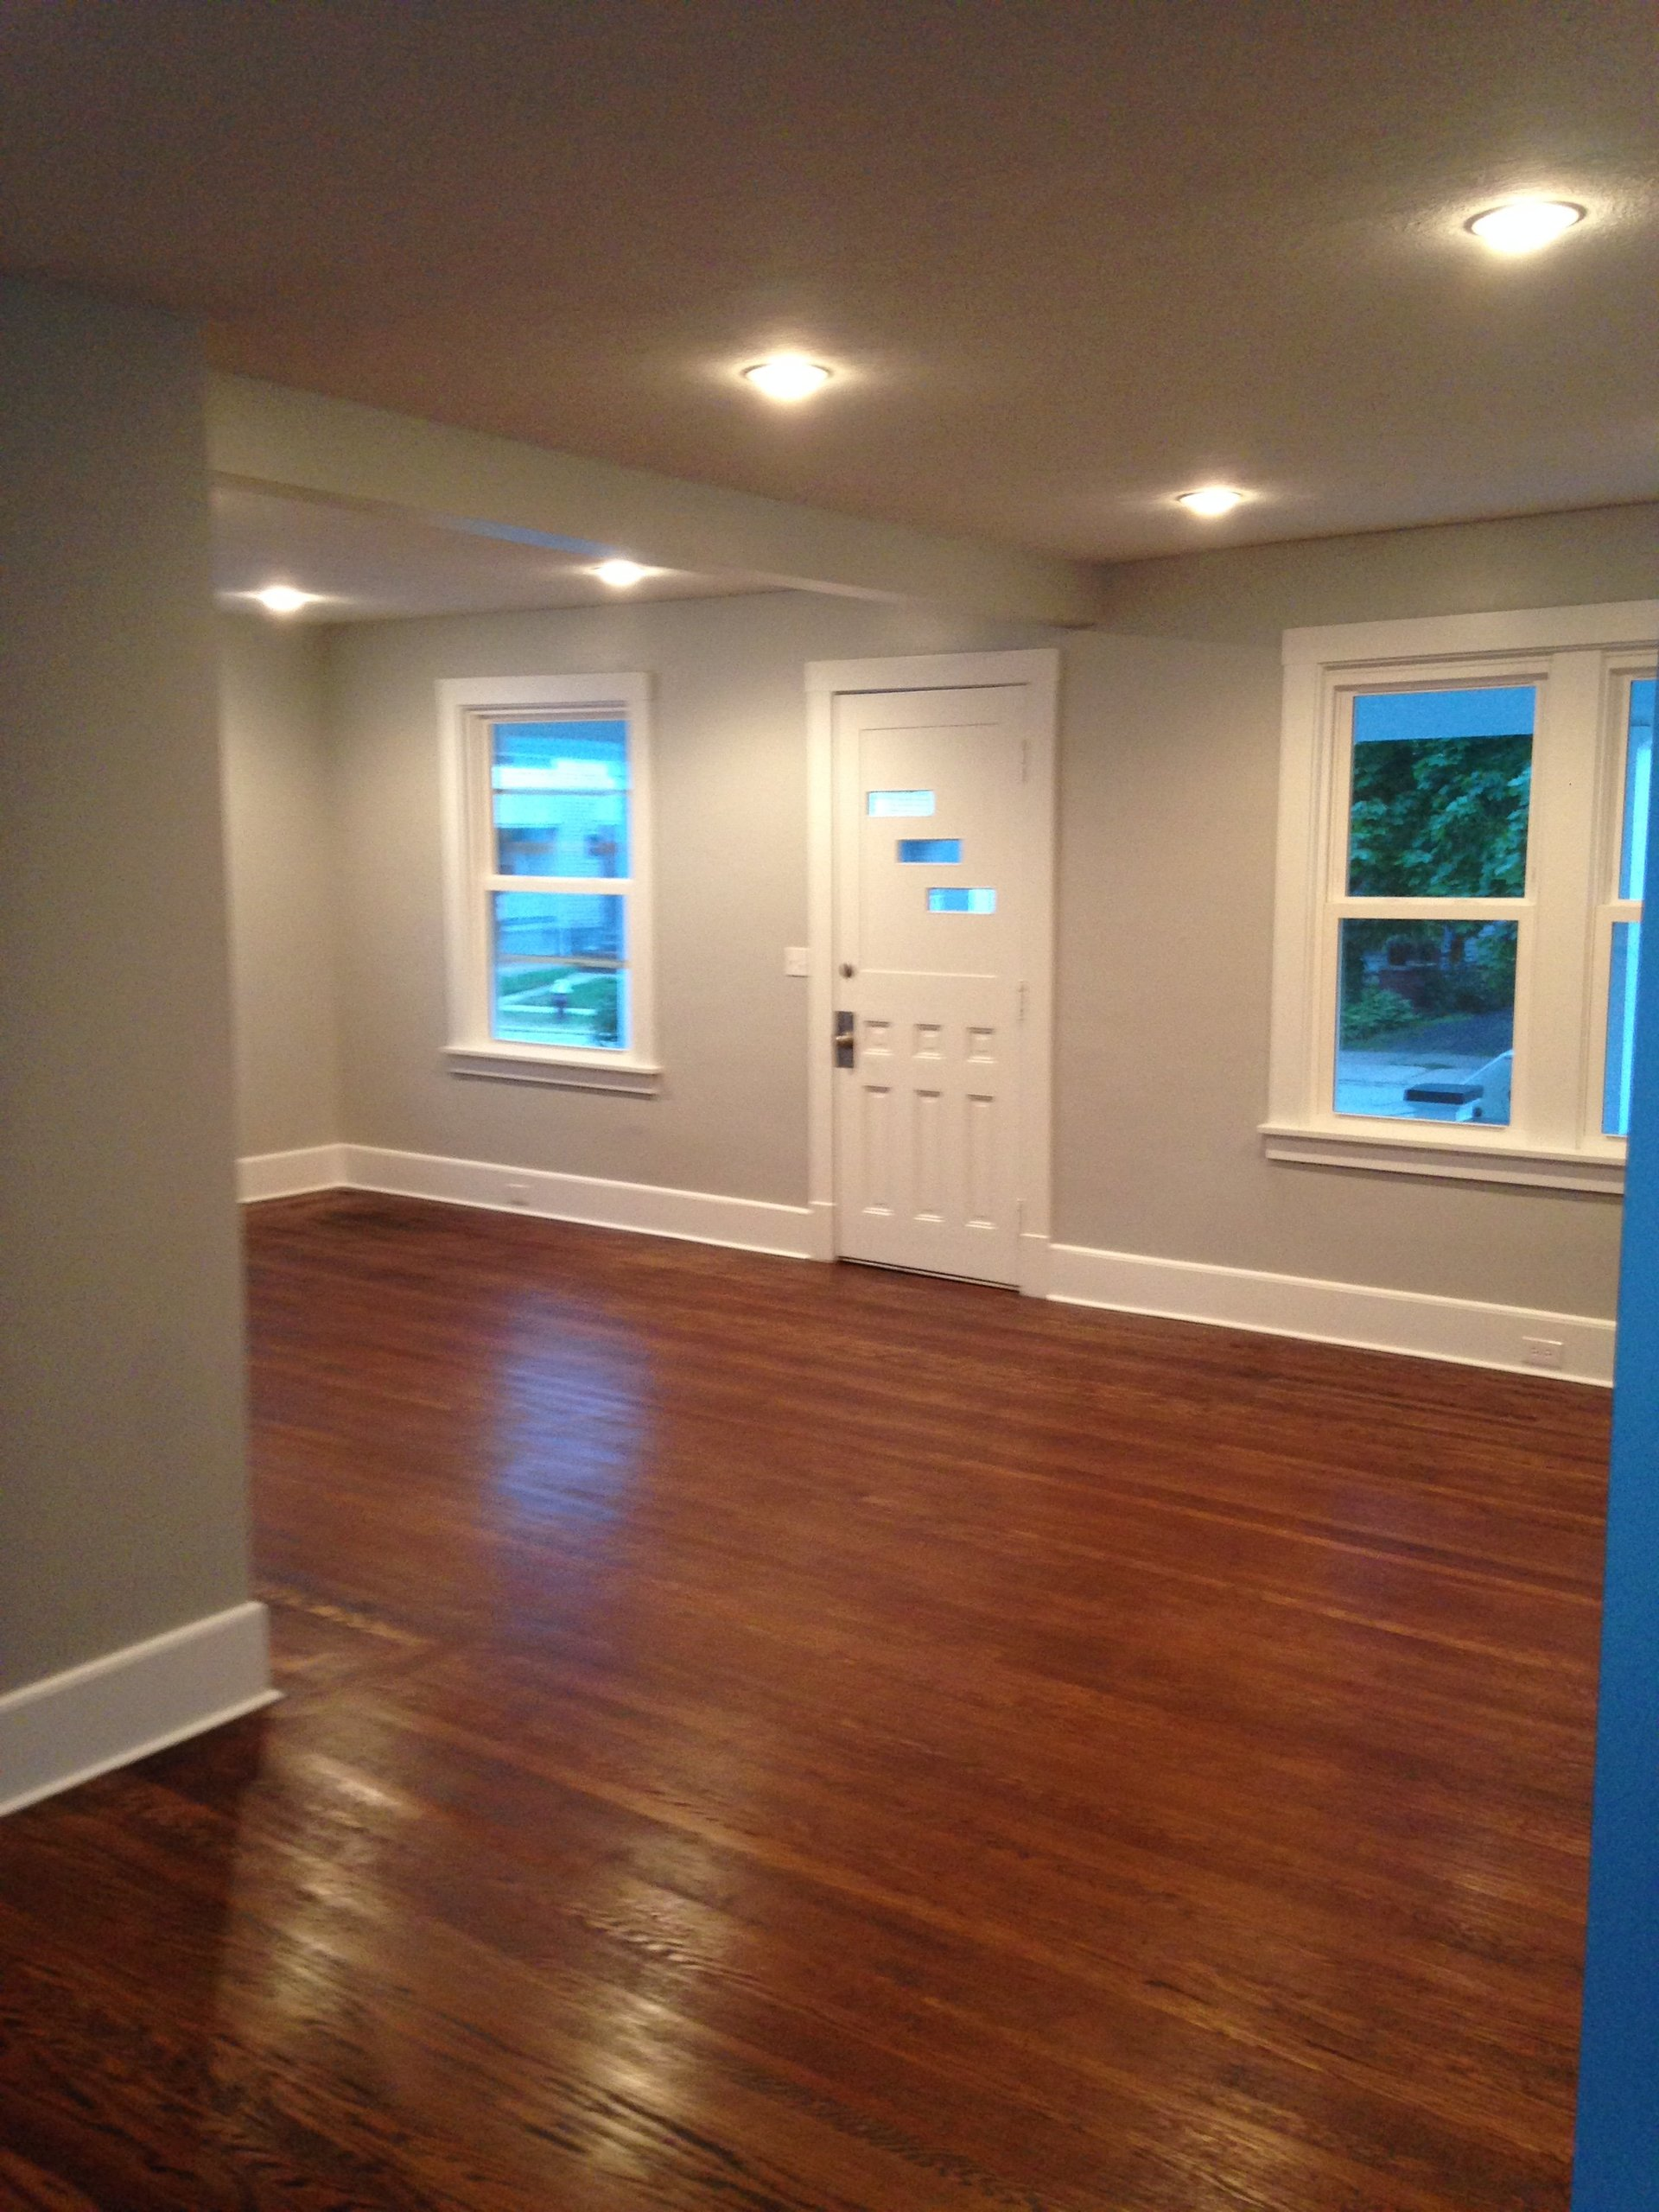 Indoe Painting And Home Improvements LLC image 3